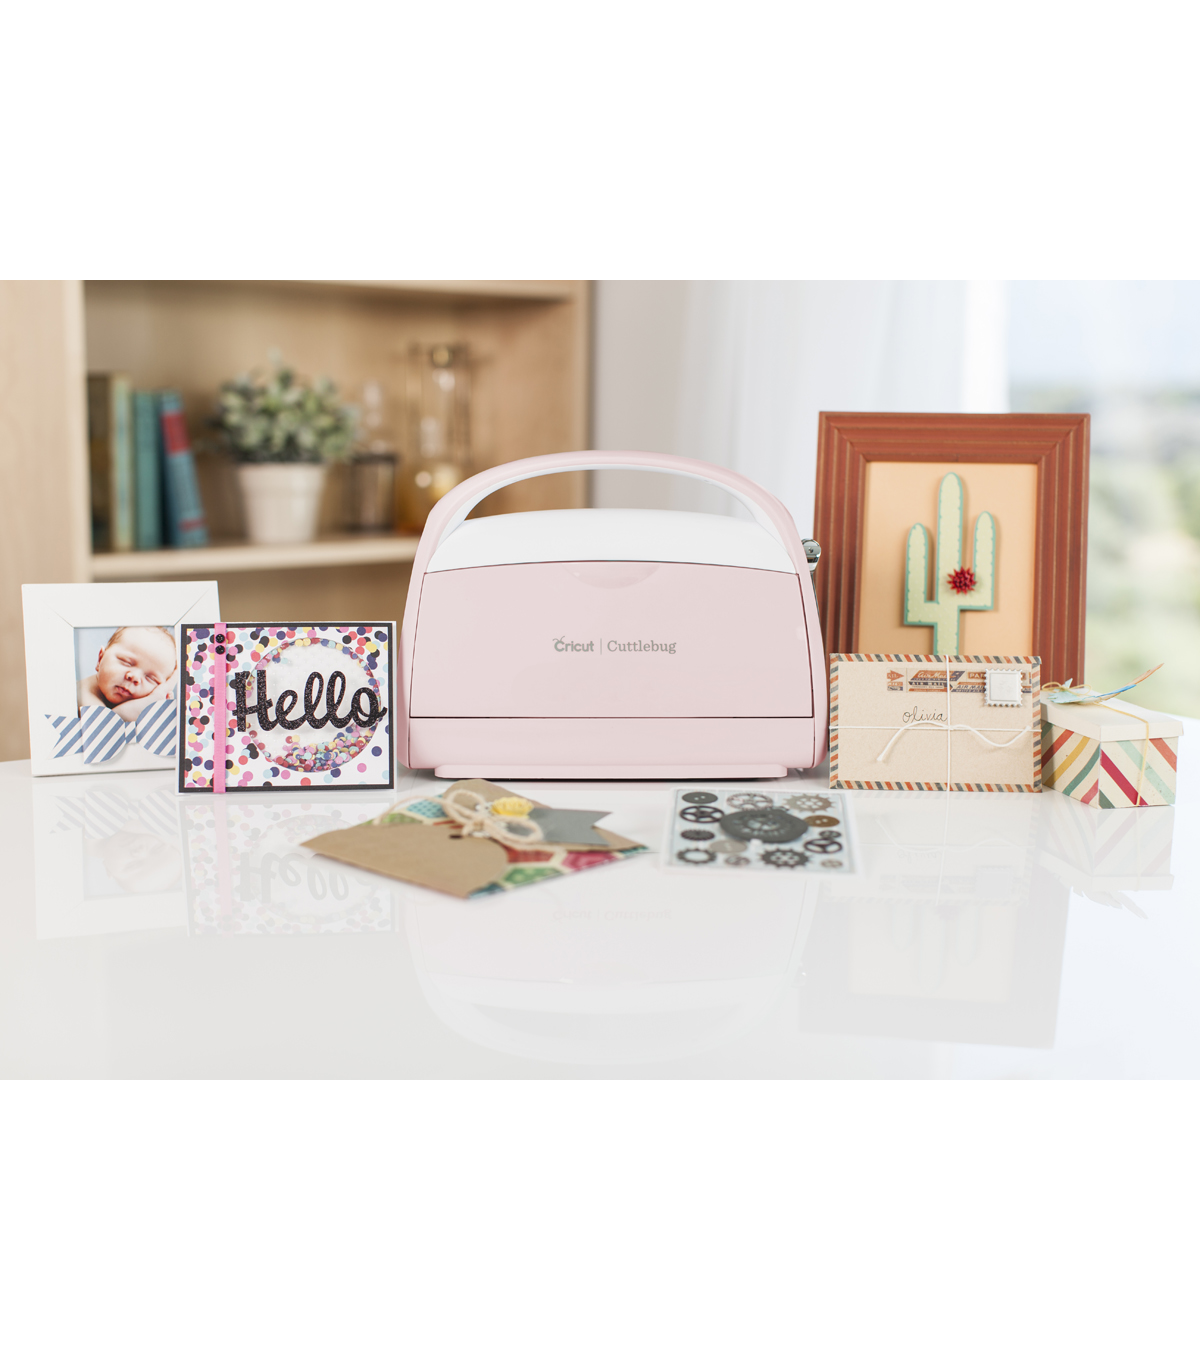 Cricut Cuttlebug Machine-Rose